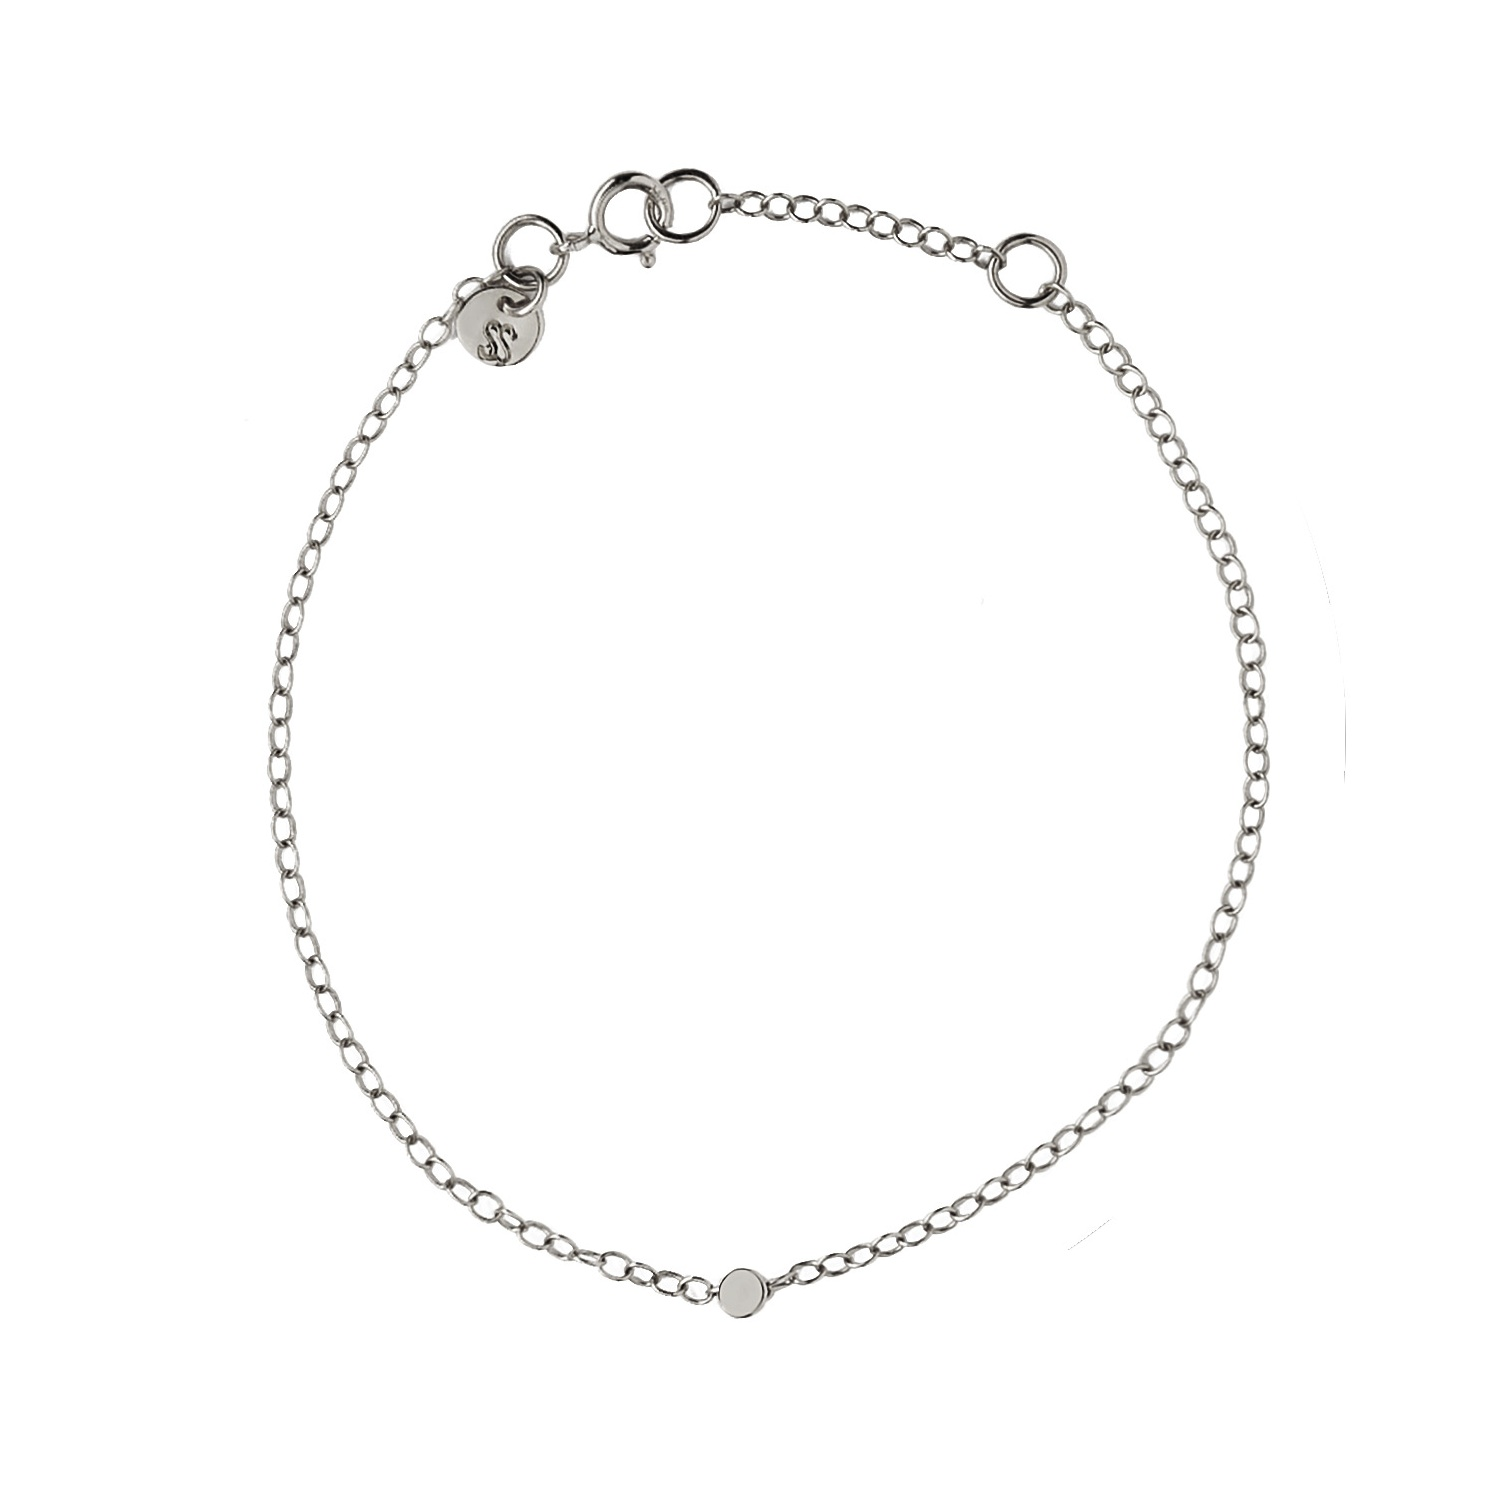 stella dot giveaway and collage show bracelet trunk